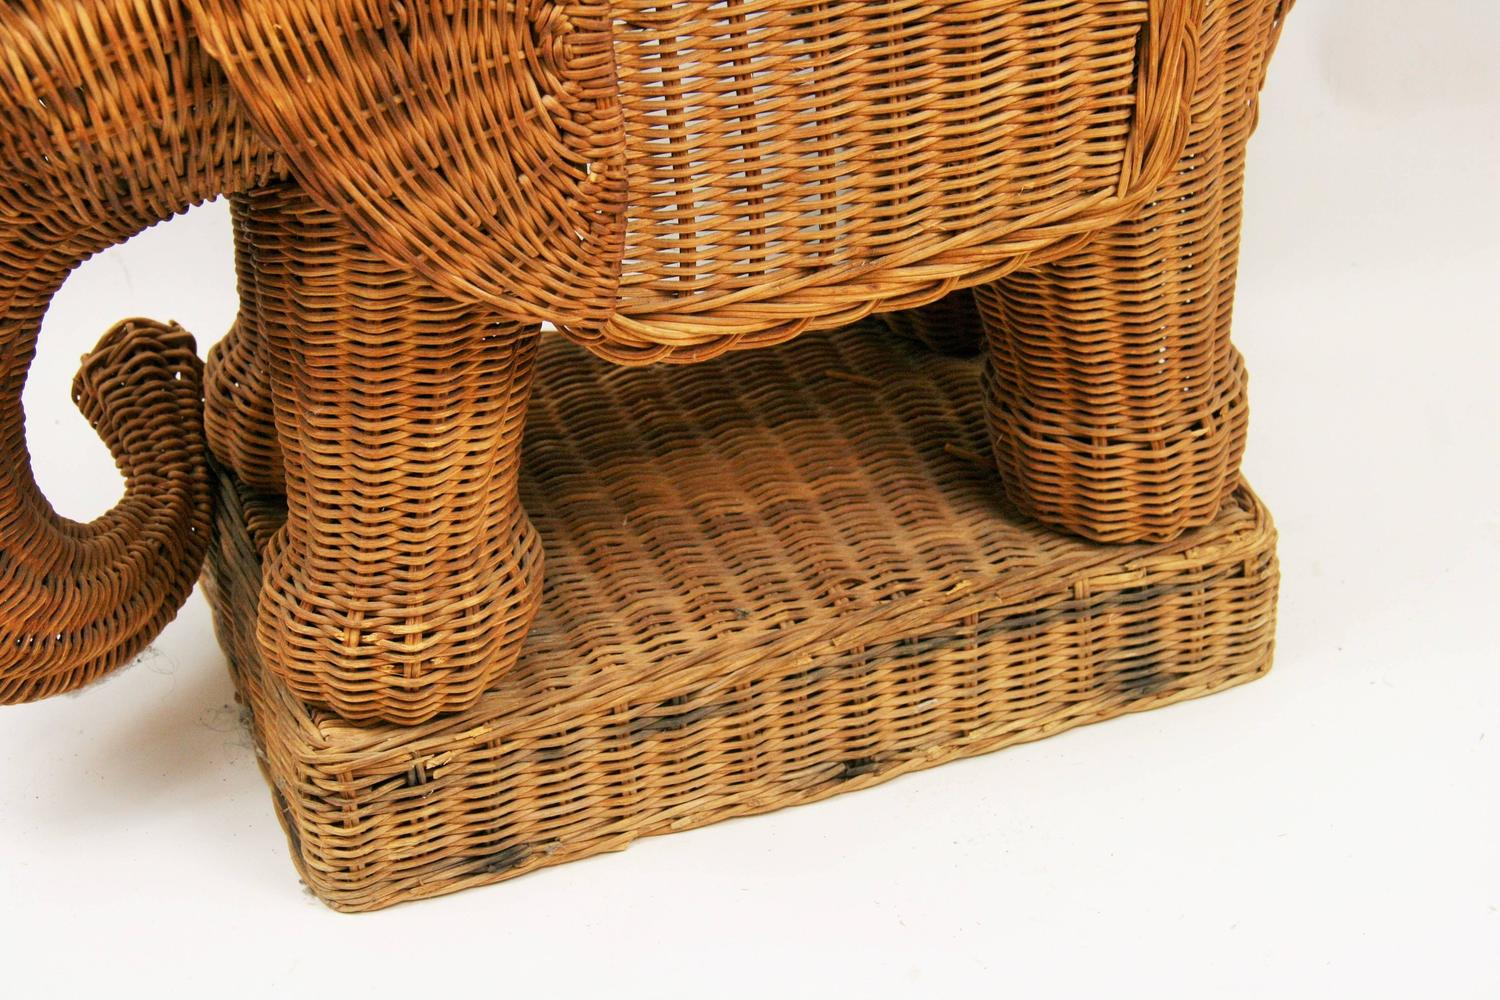 Wicker Elephant Table For Sale At 1stdibs